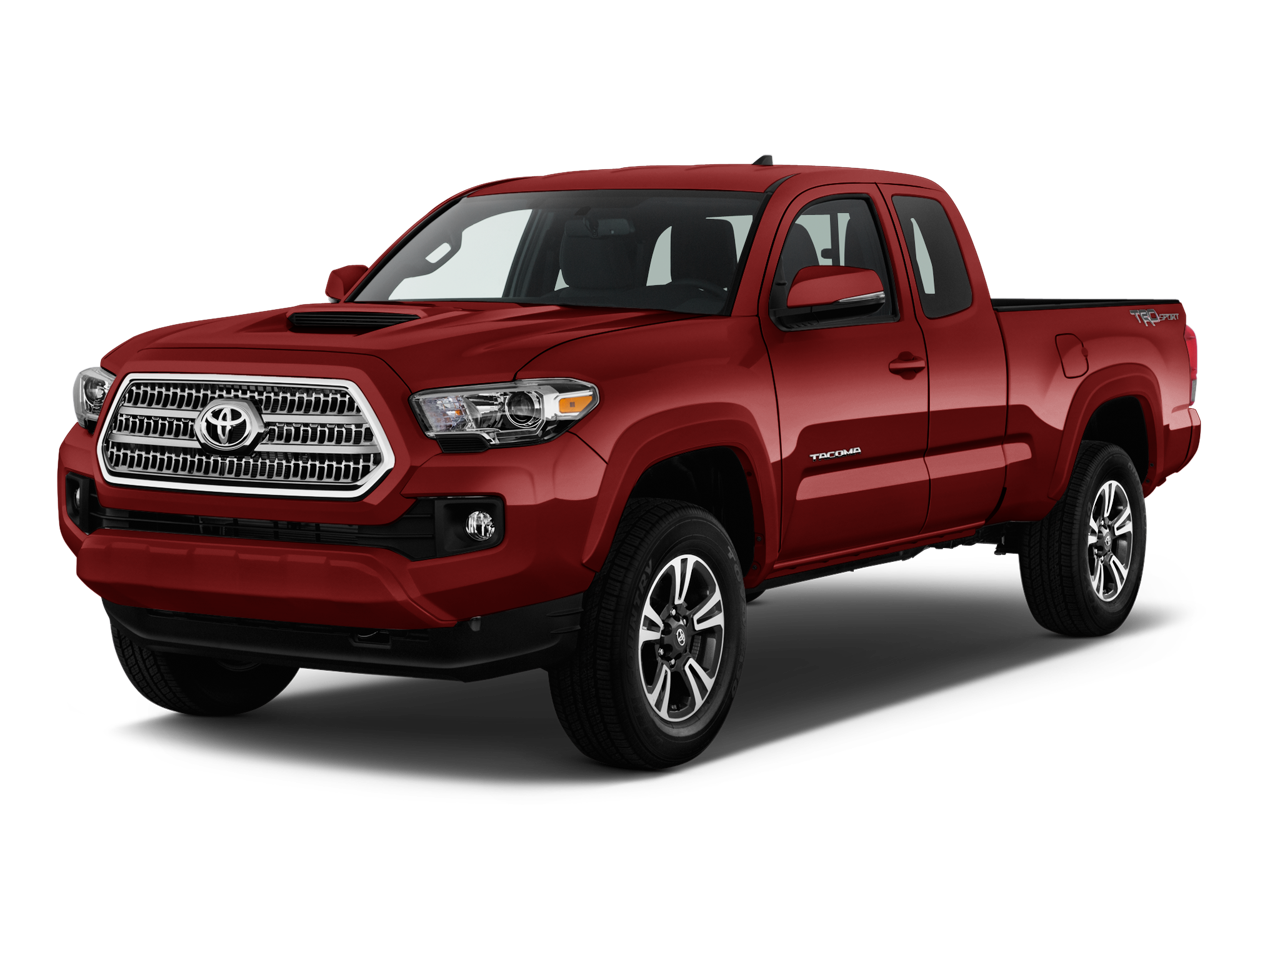 new 2018 toyota tacoma trd sport access cab 6 39 bed v6 4x4 mt in milpitas ca piercey toyota. Black Bedroom Furniture Sets. Home Design Ideas